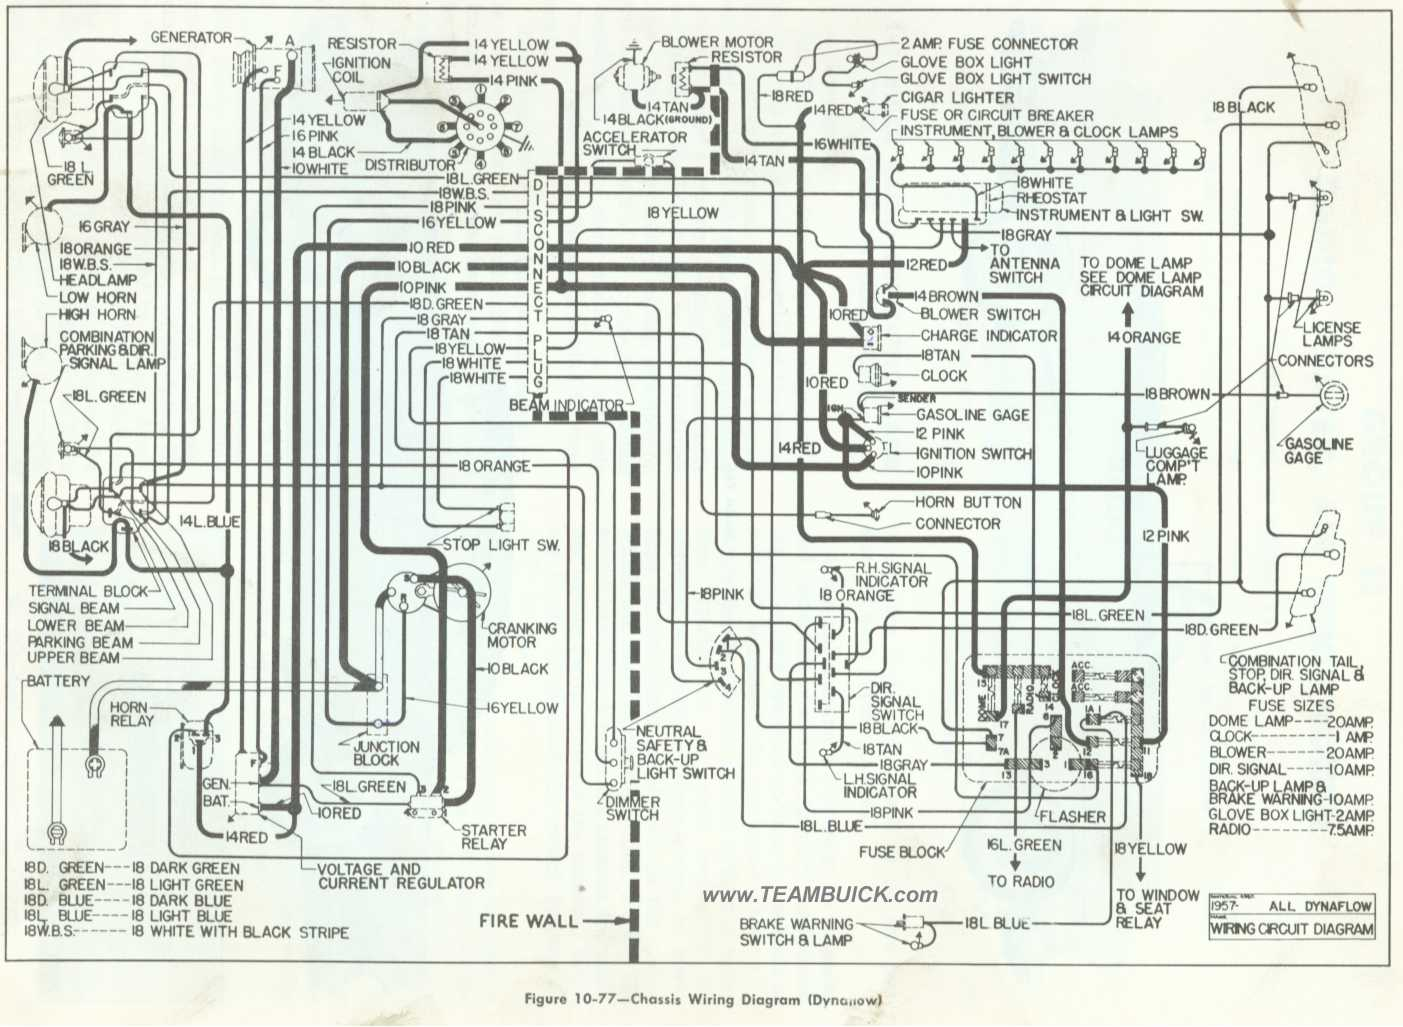 hight resolution of chassis wiring diagram dynaflow 1957 buick